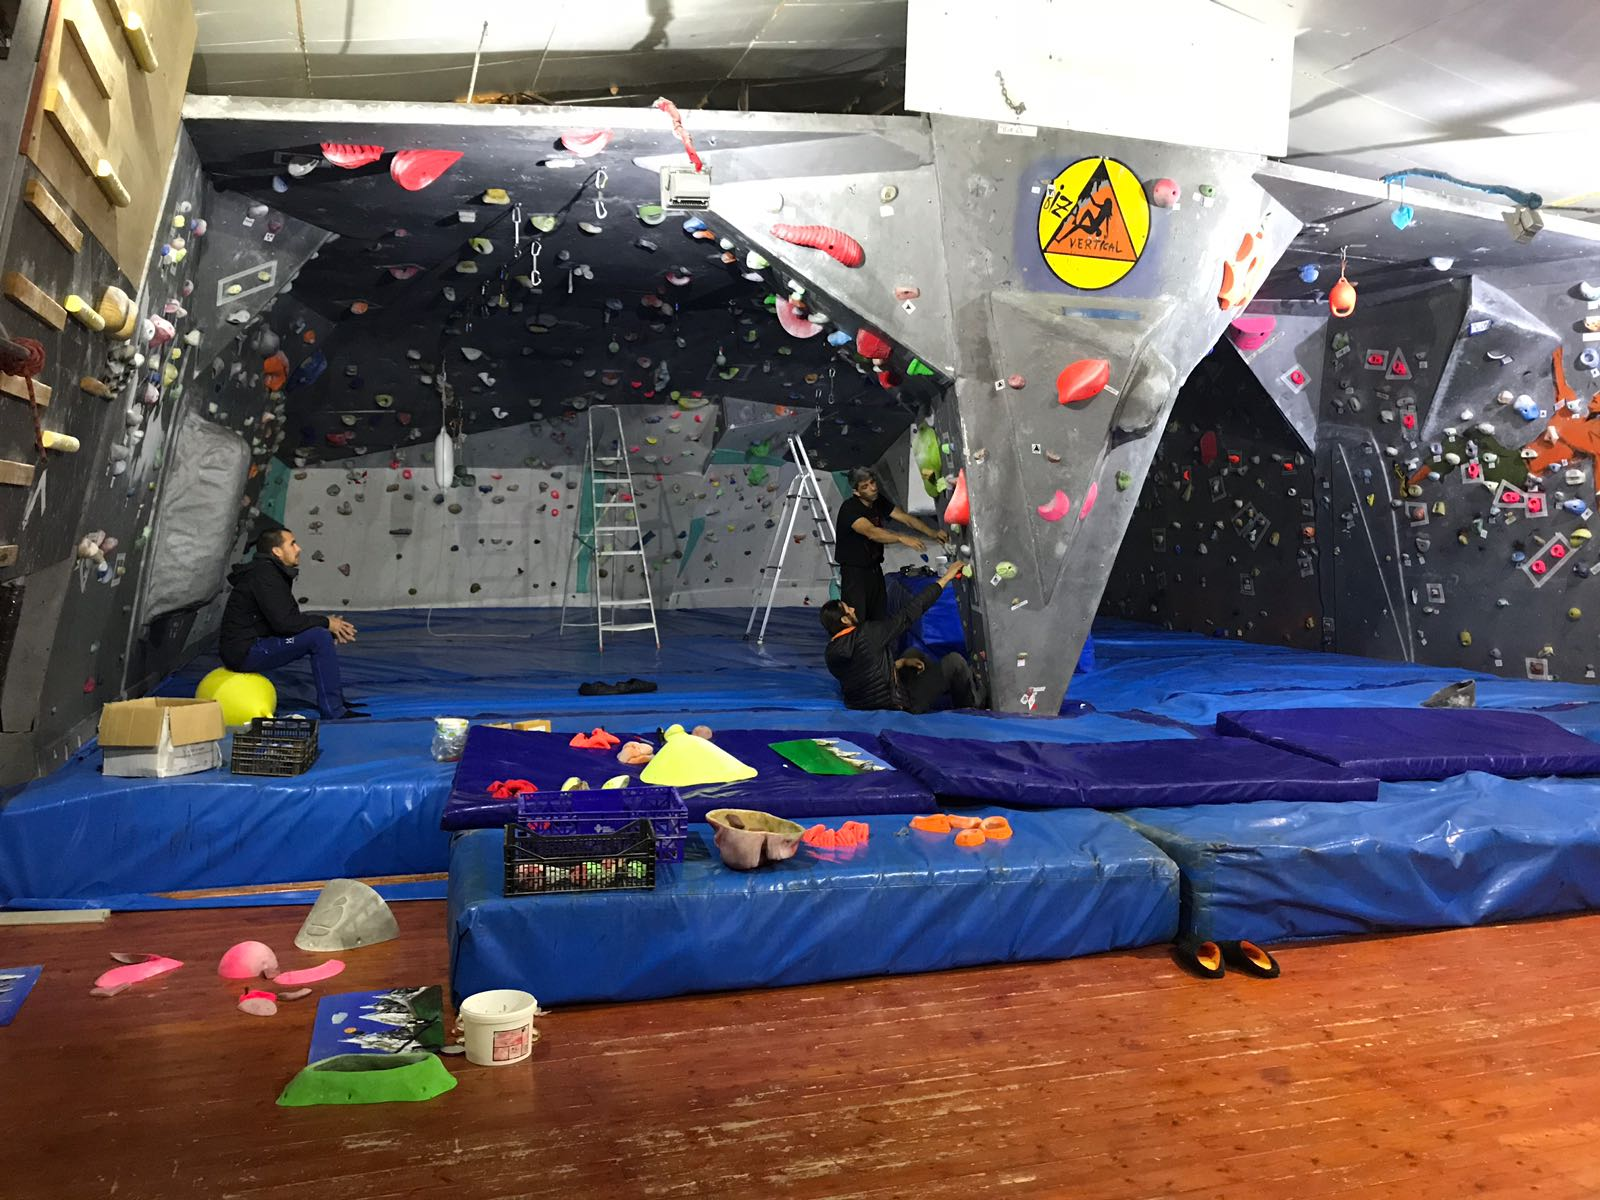 Practice climbing on these artifitial climbing walls